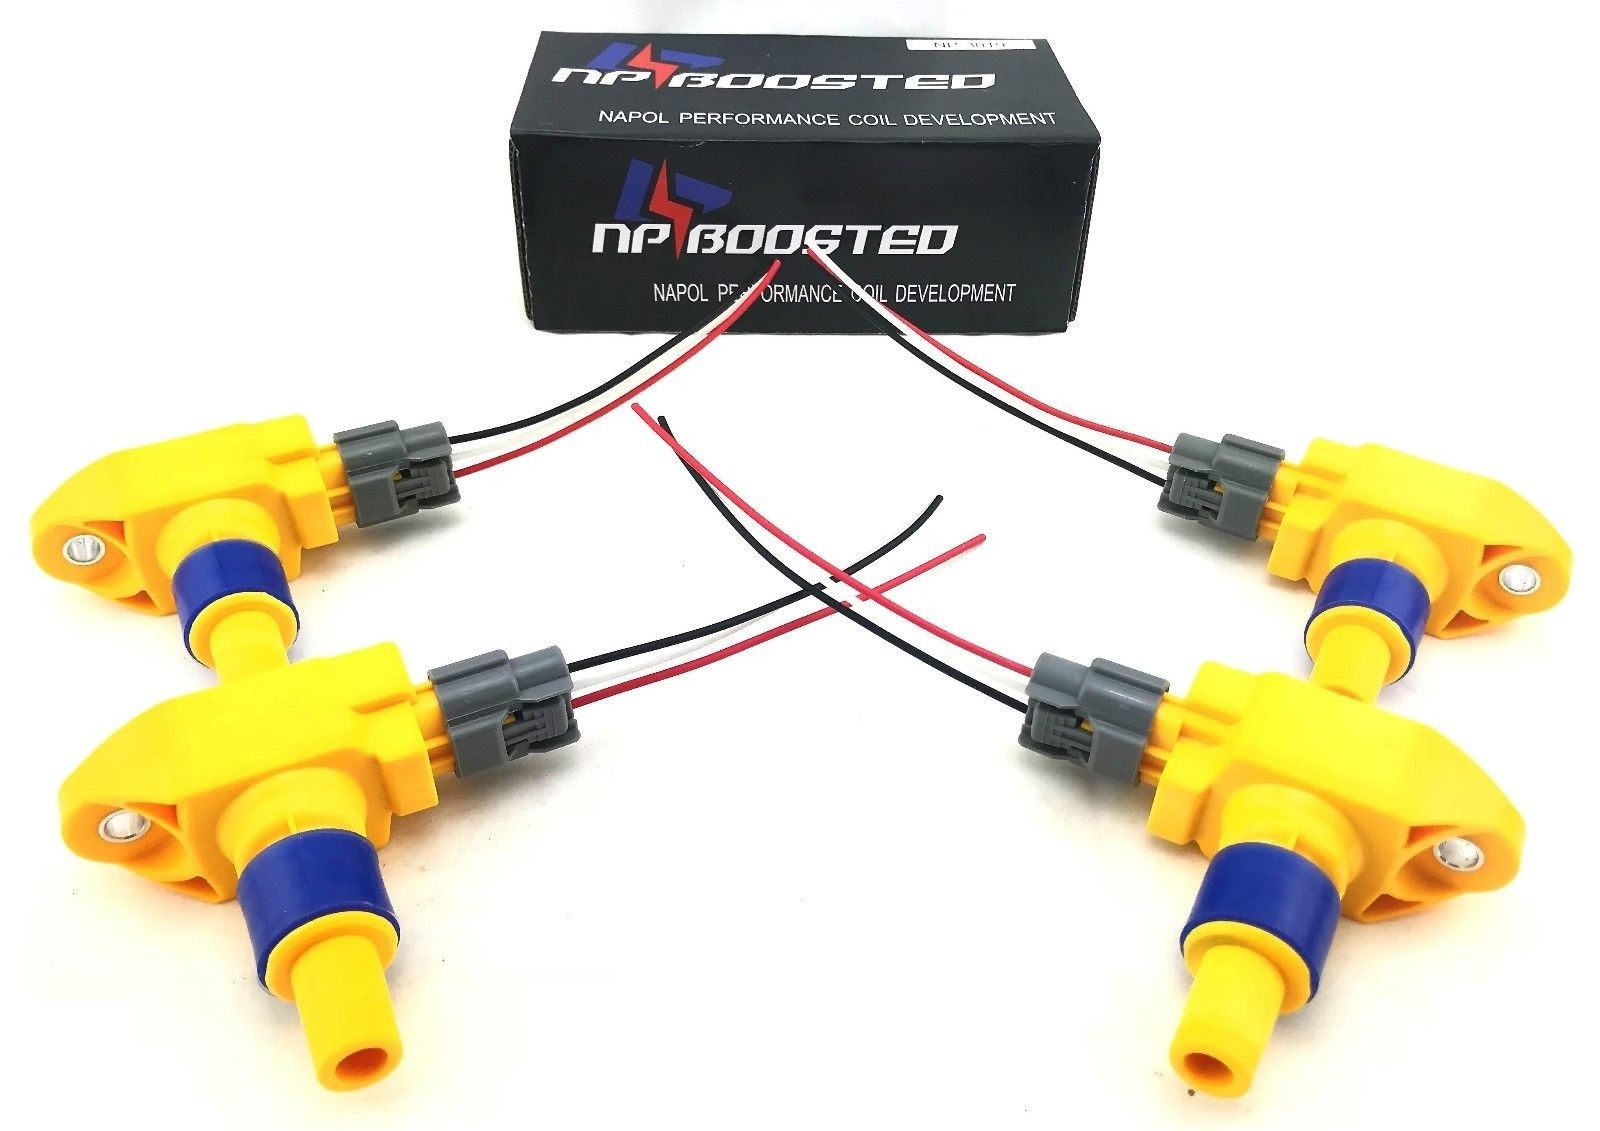 rx8 coil pack wiring diagram 2000 jeep grand cherokee radio 2004 43 mazda coils rx 8 ignition packs w wire